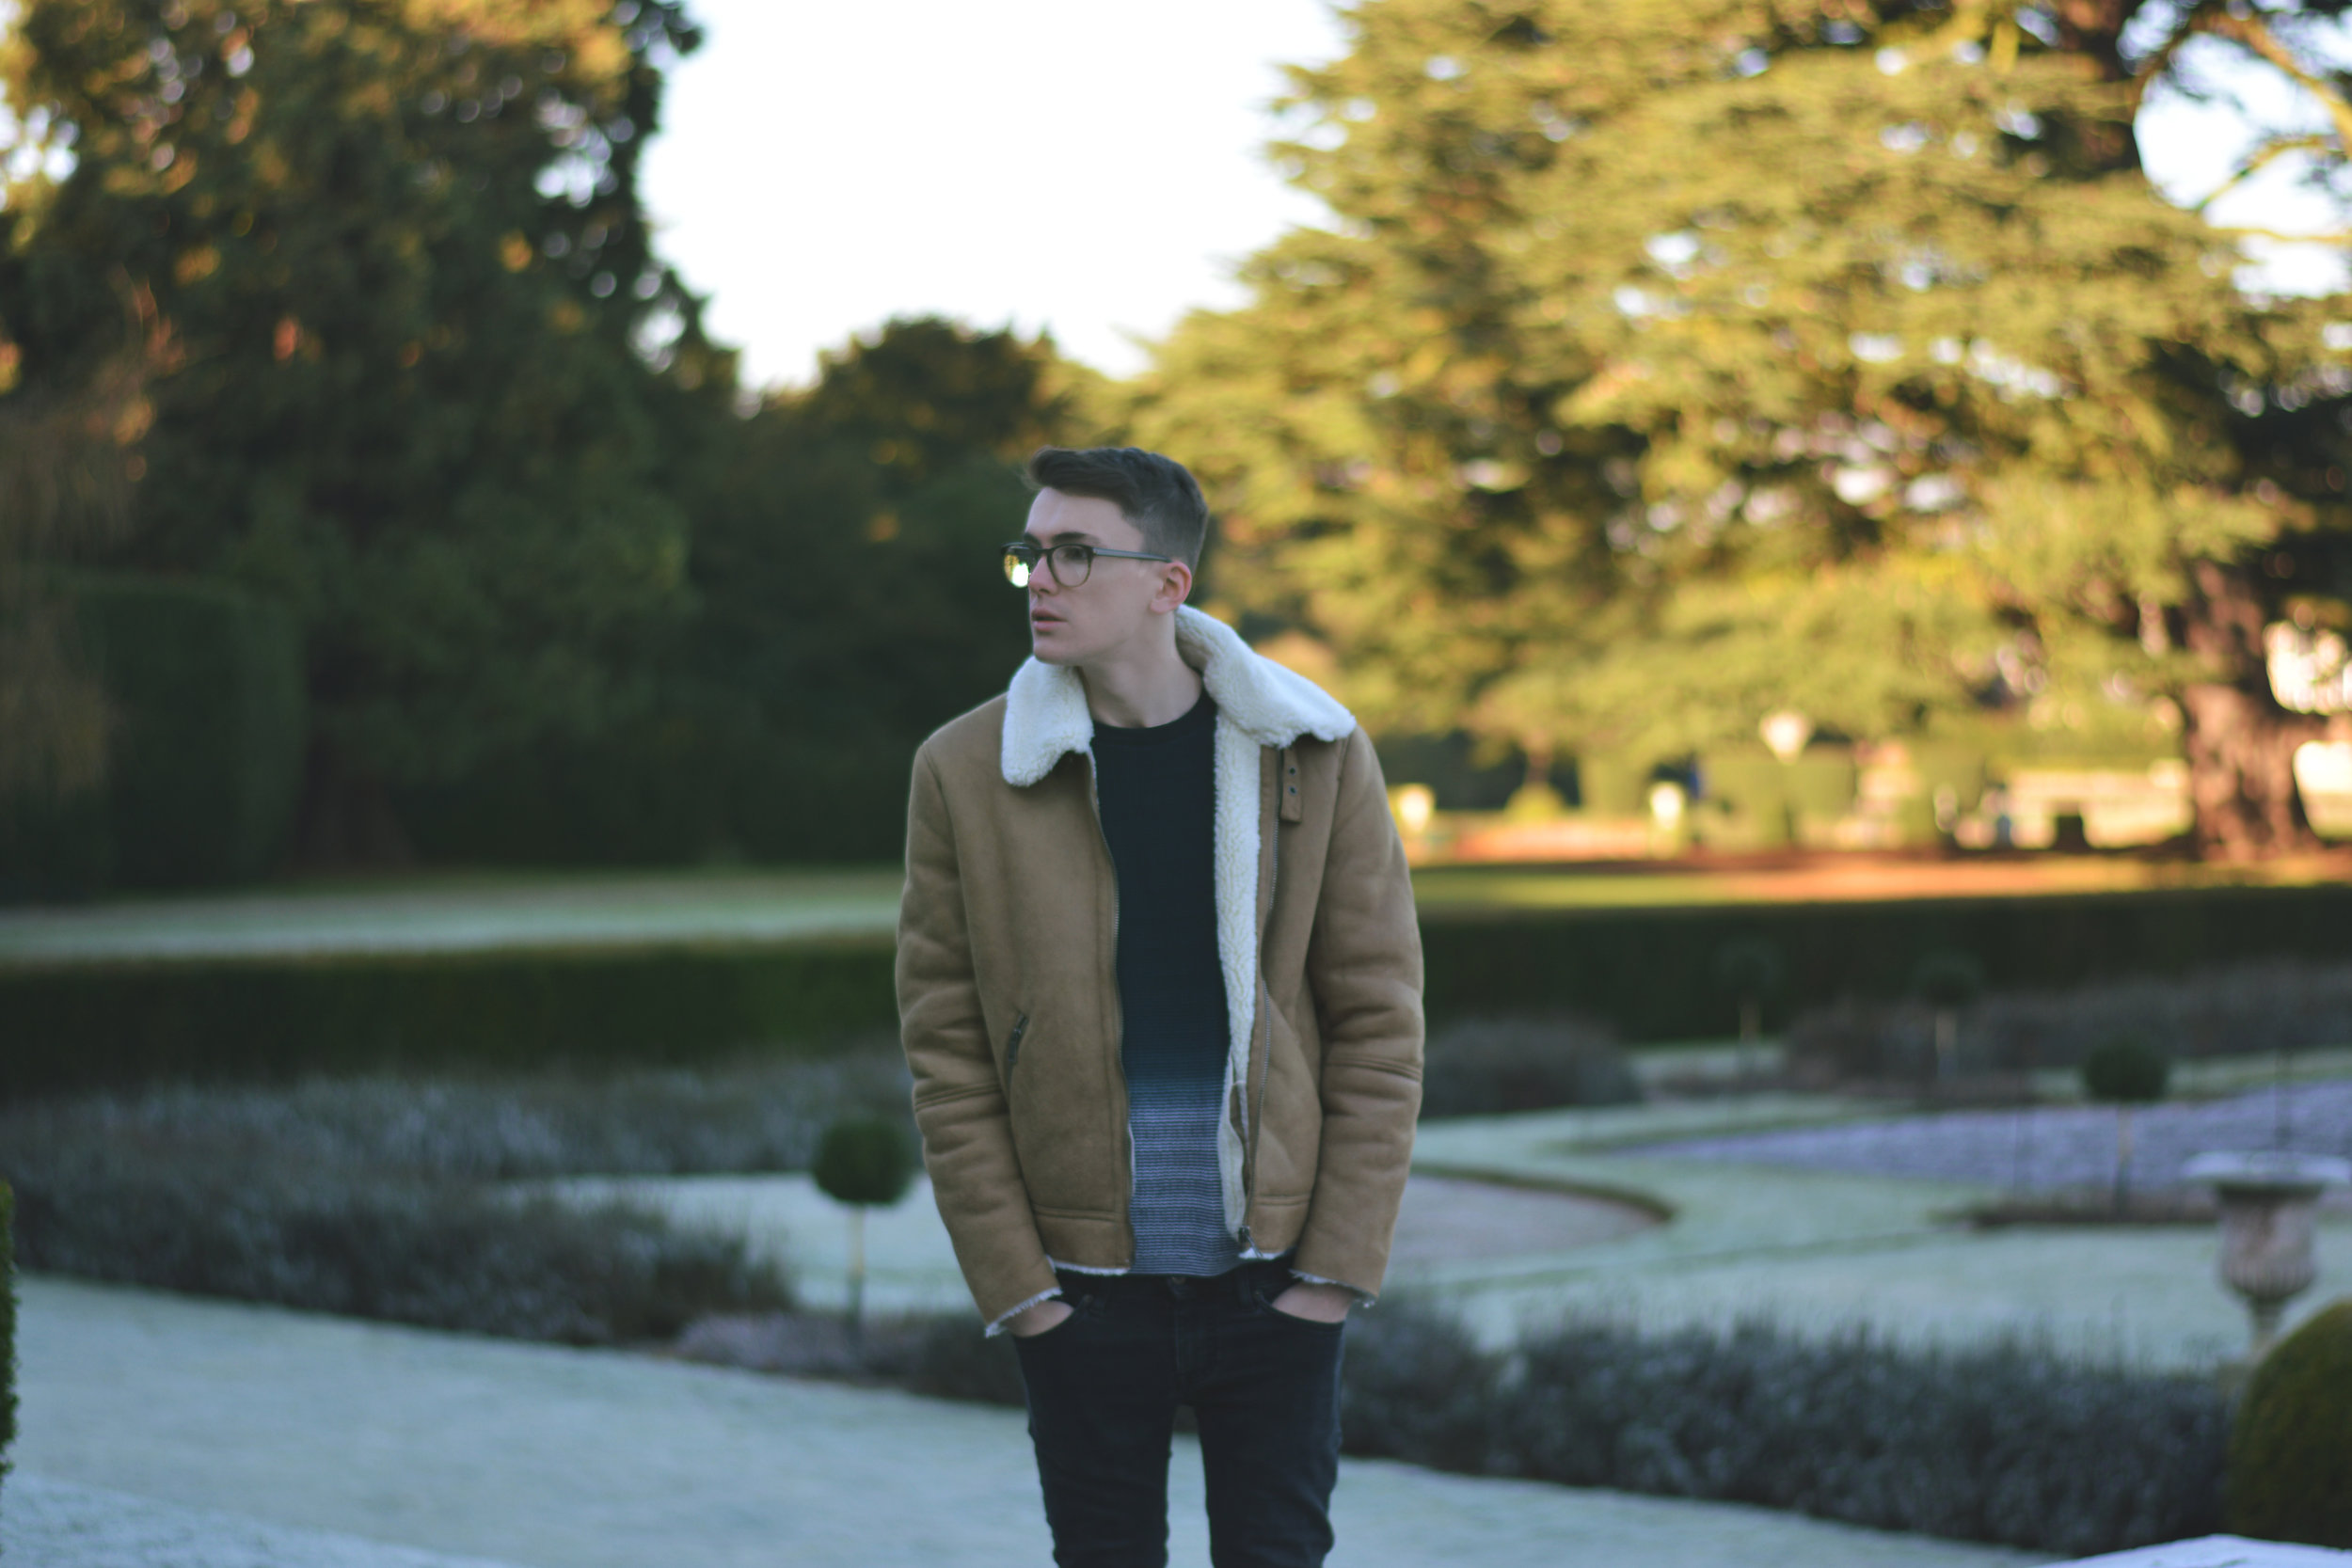 ASOS Shearling Jacket | Sam Squire UK Male fashion & lifestyle blogger